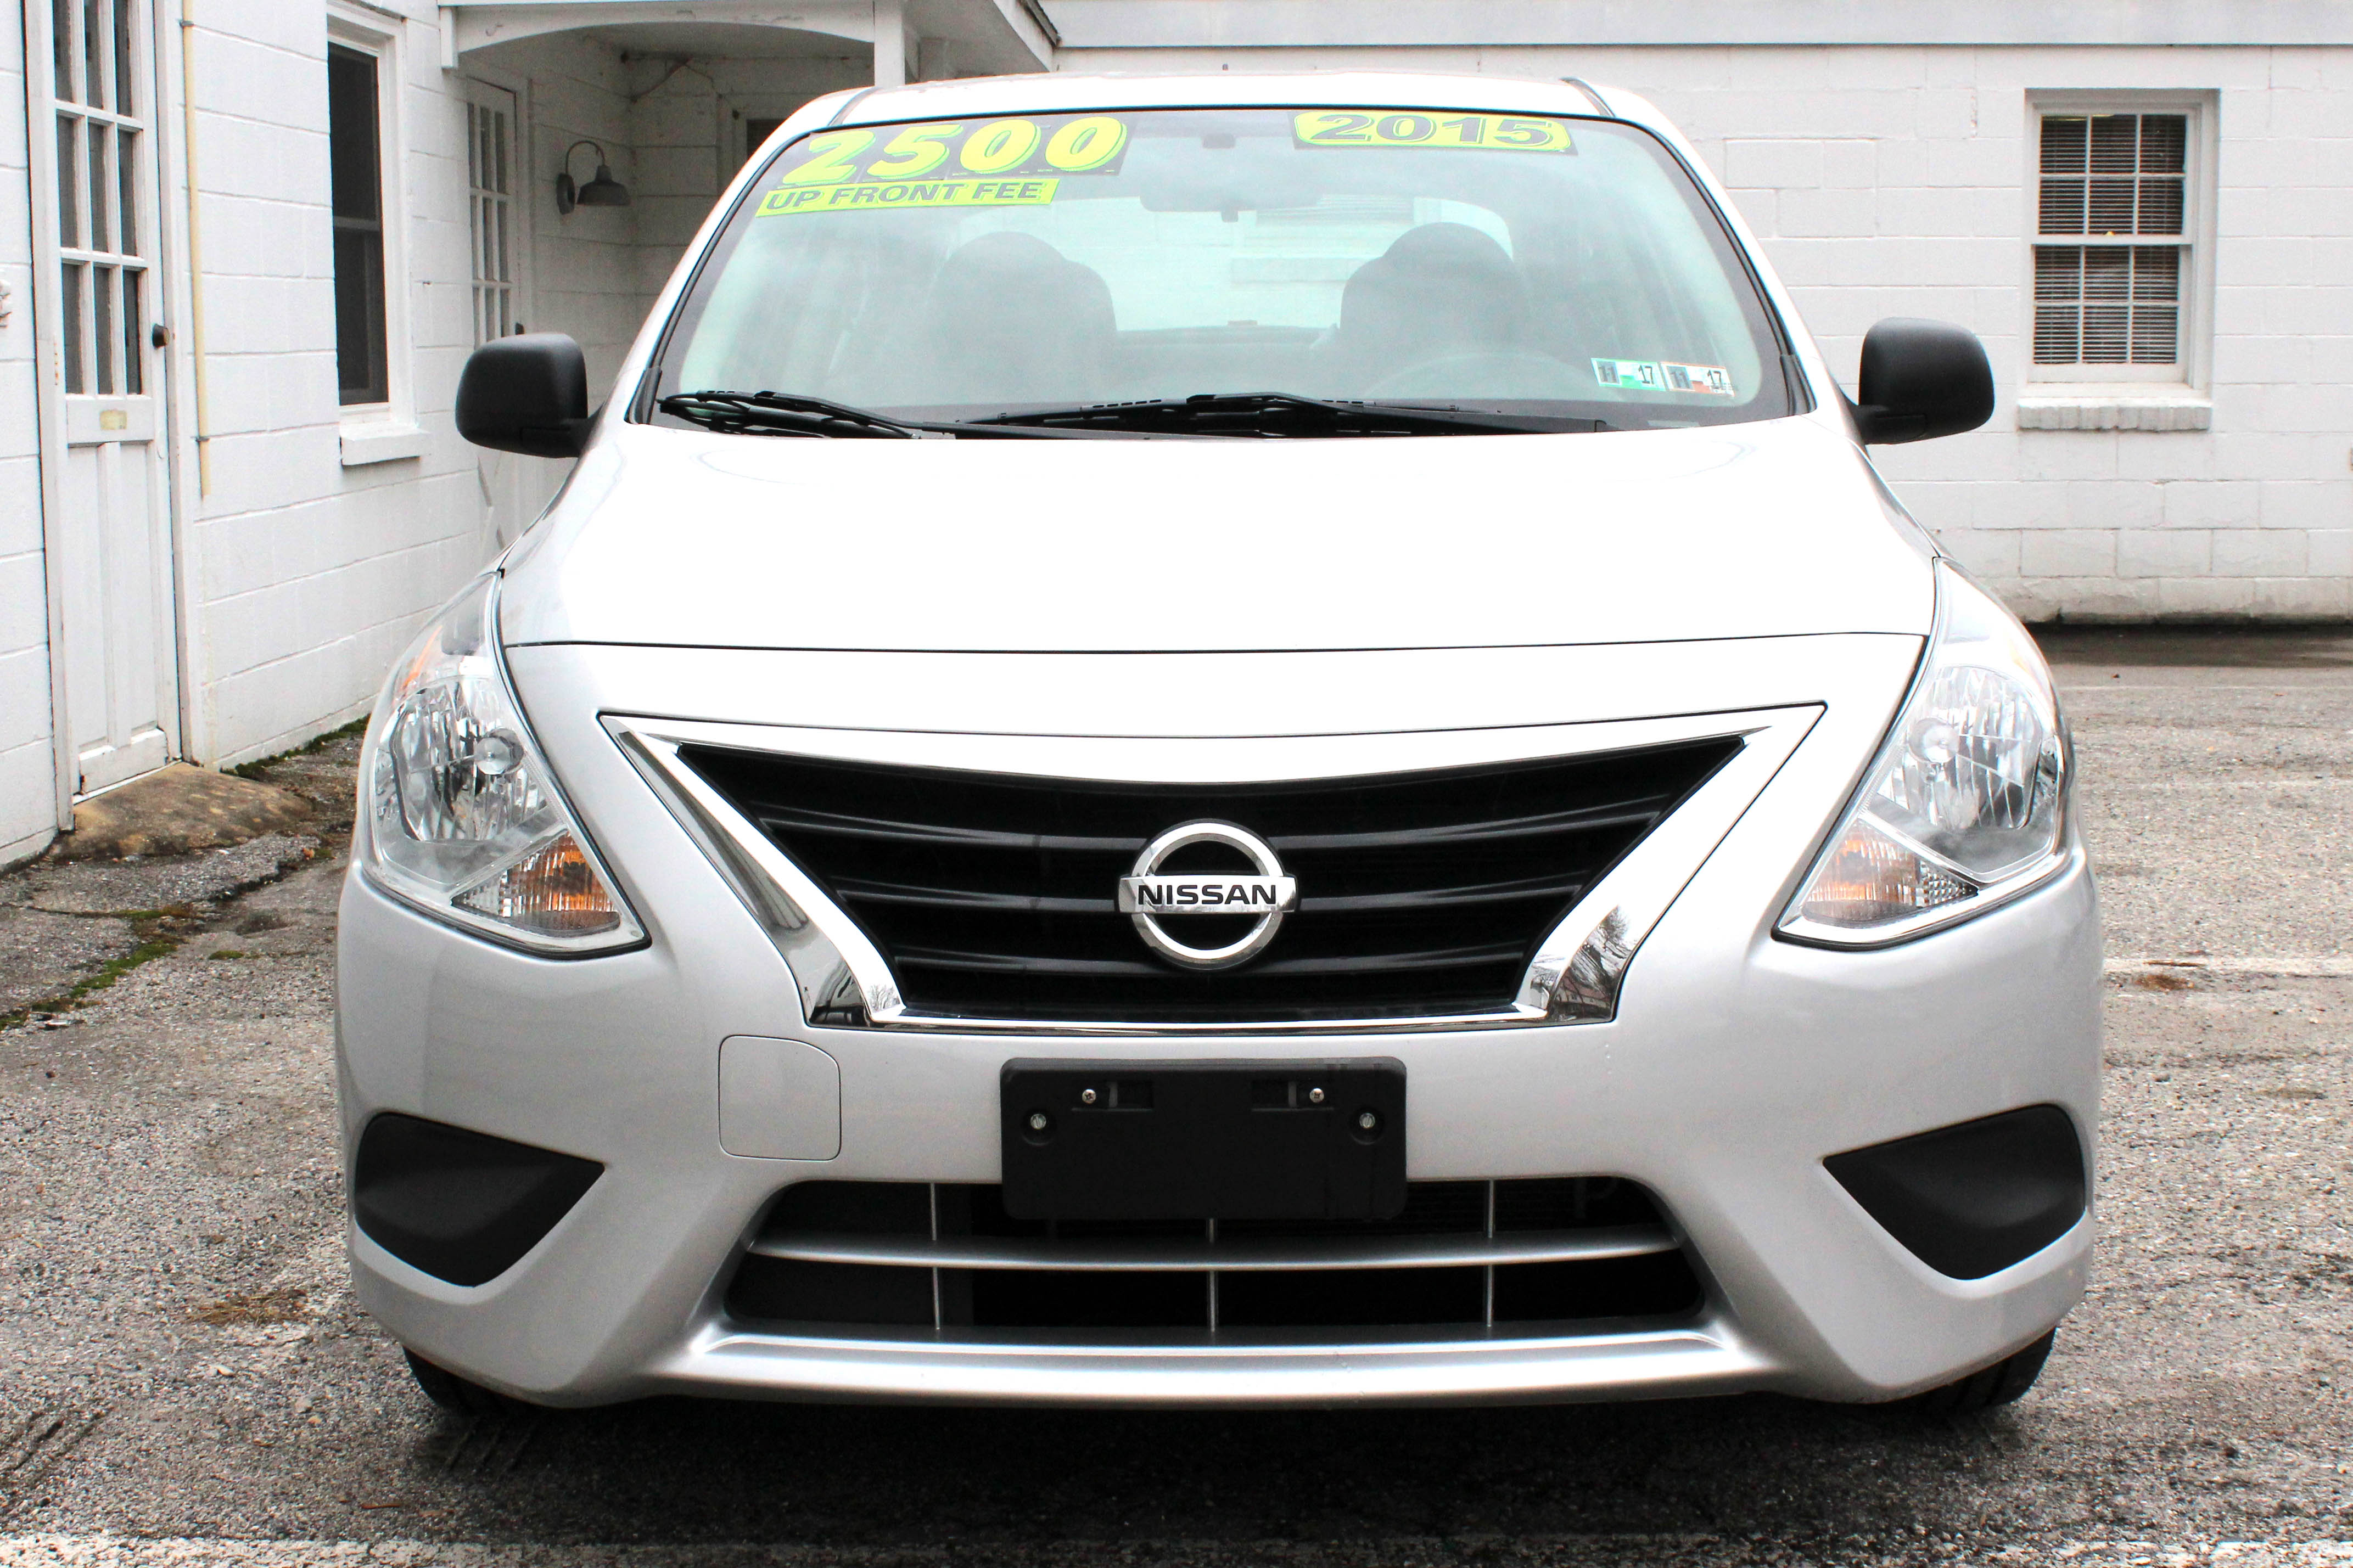 Nissan Versa 2015 Front Buy Here Pay Here York PA